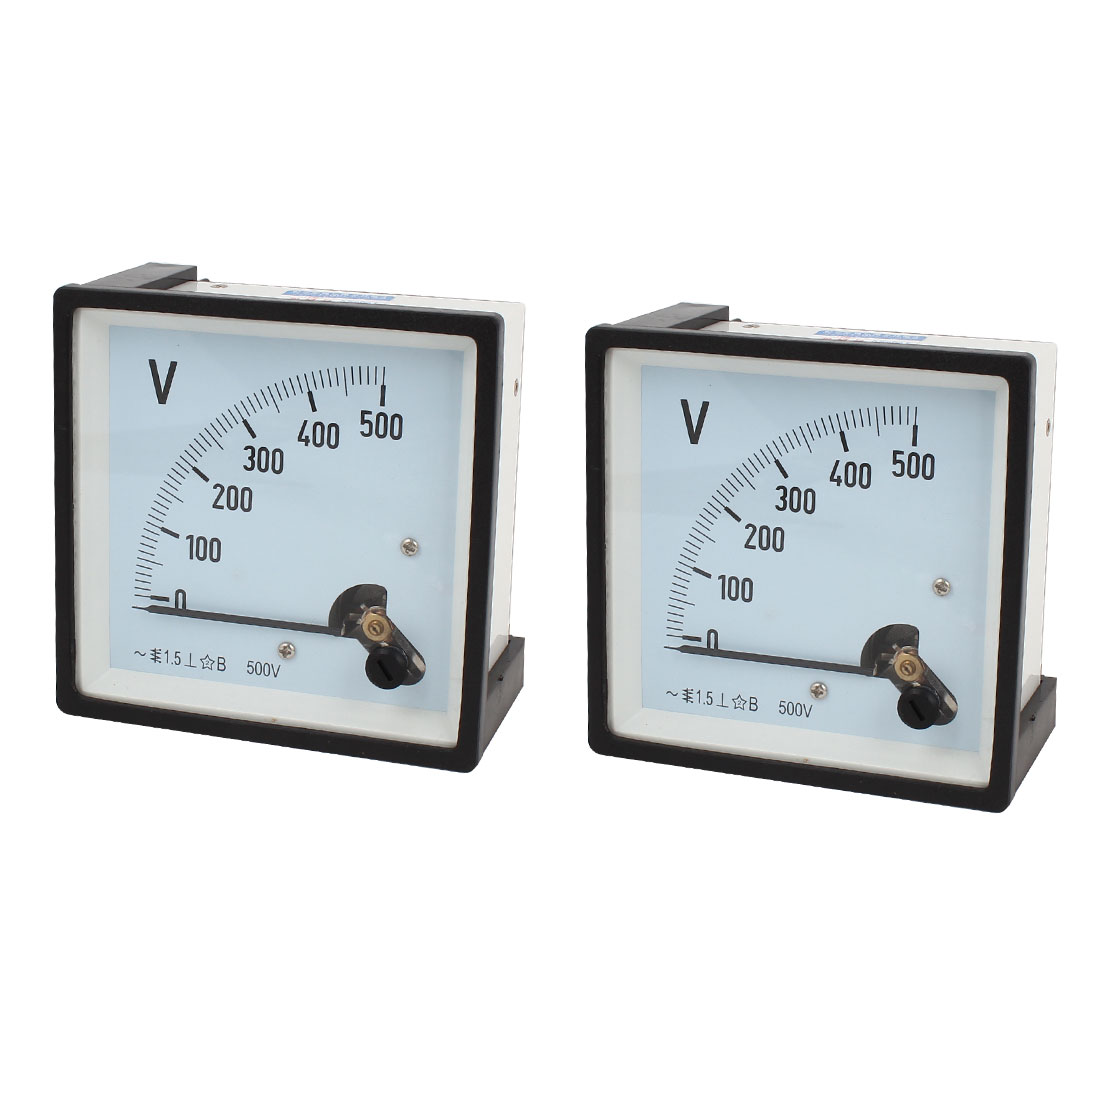 2 Pcs Square Dial Panel Gauge Voltage Meter Voltmeter AC 0-500V Class 1.5